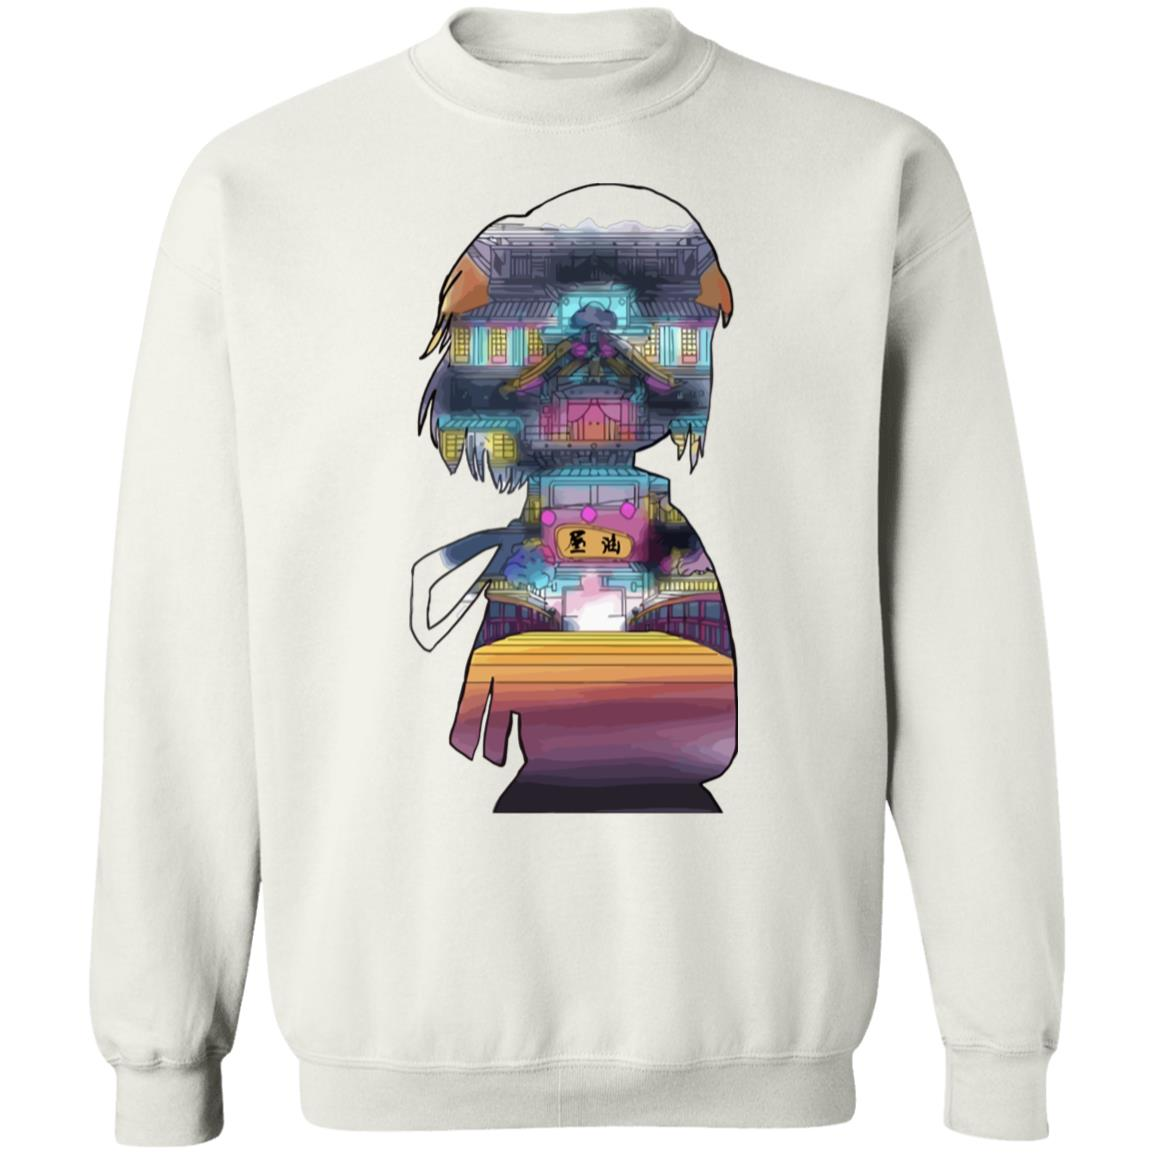 Spirited Away – Sen and The Bathhouse Cutout Colorful Sweatshirt